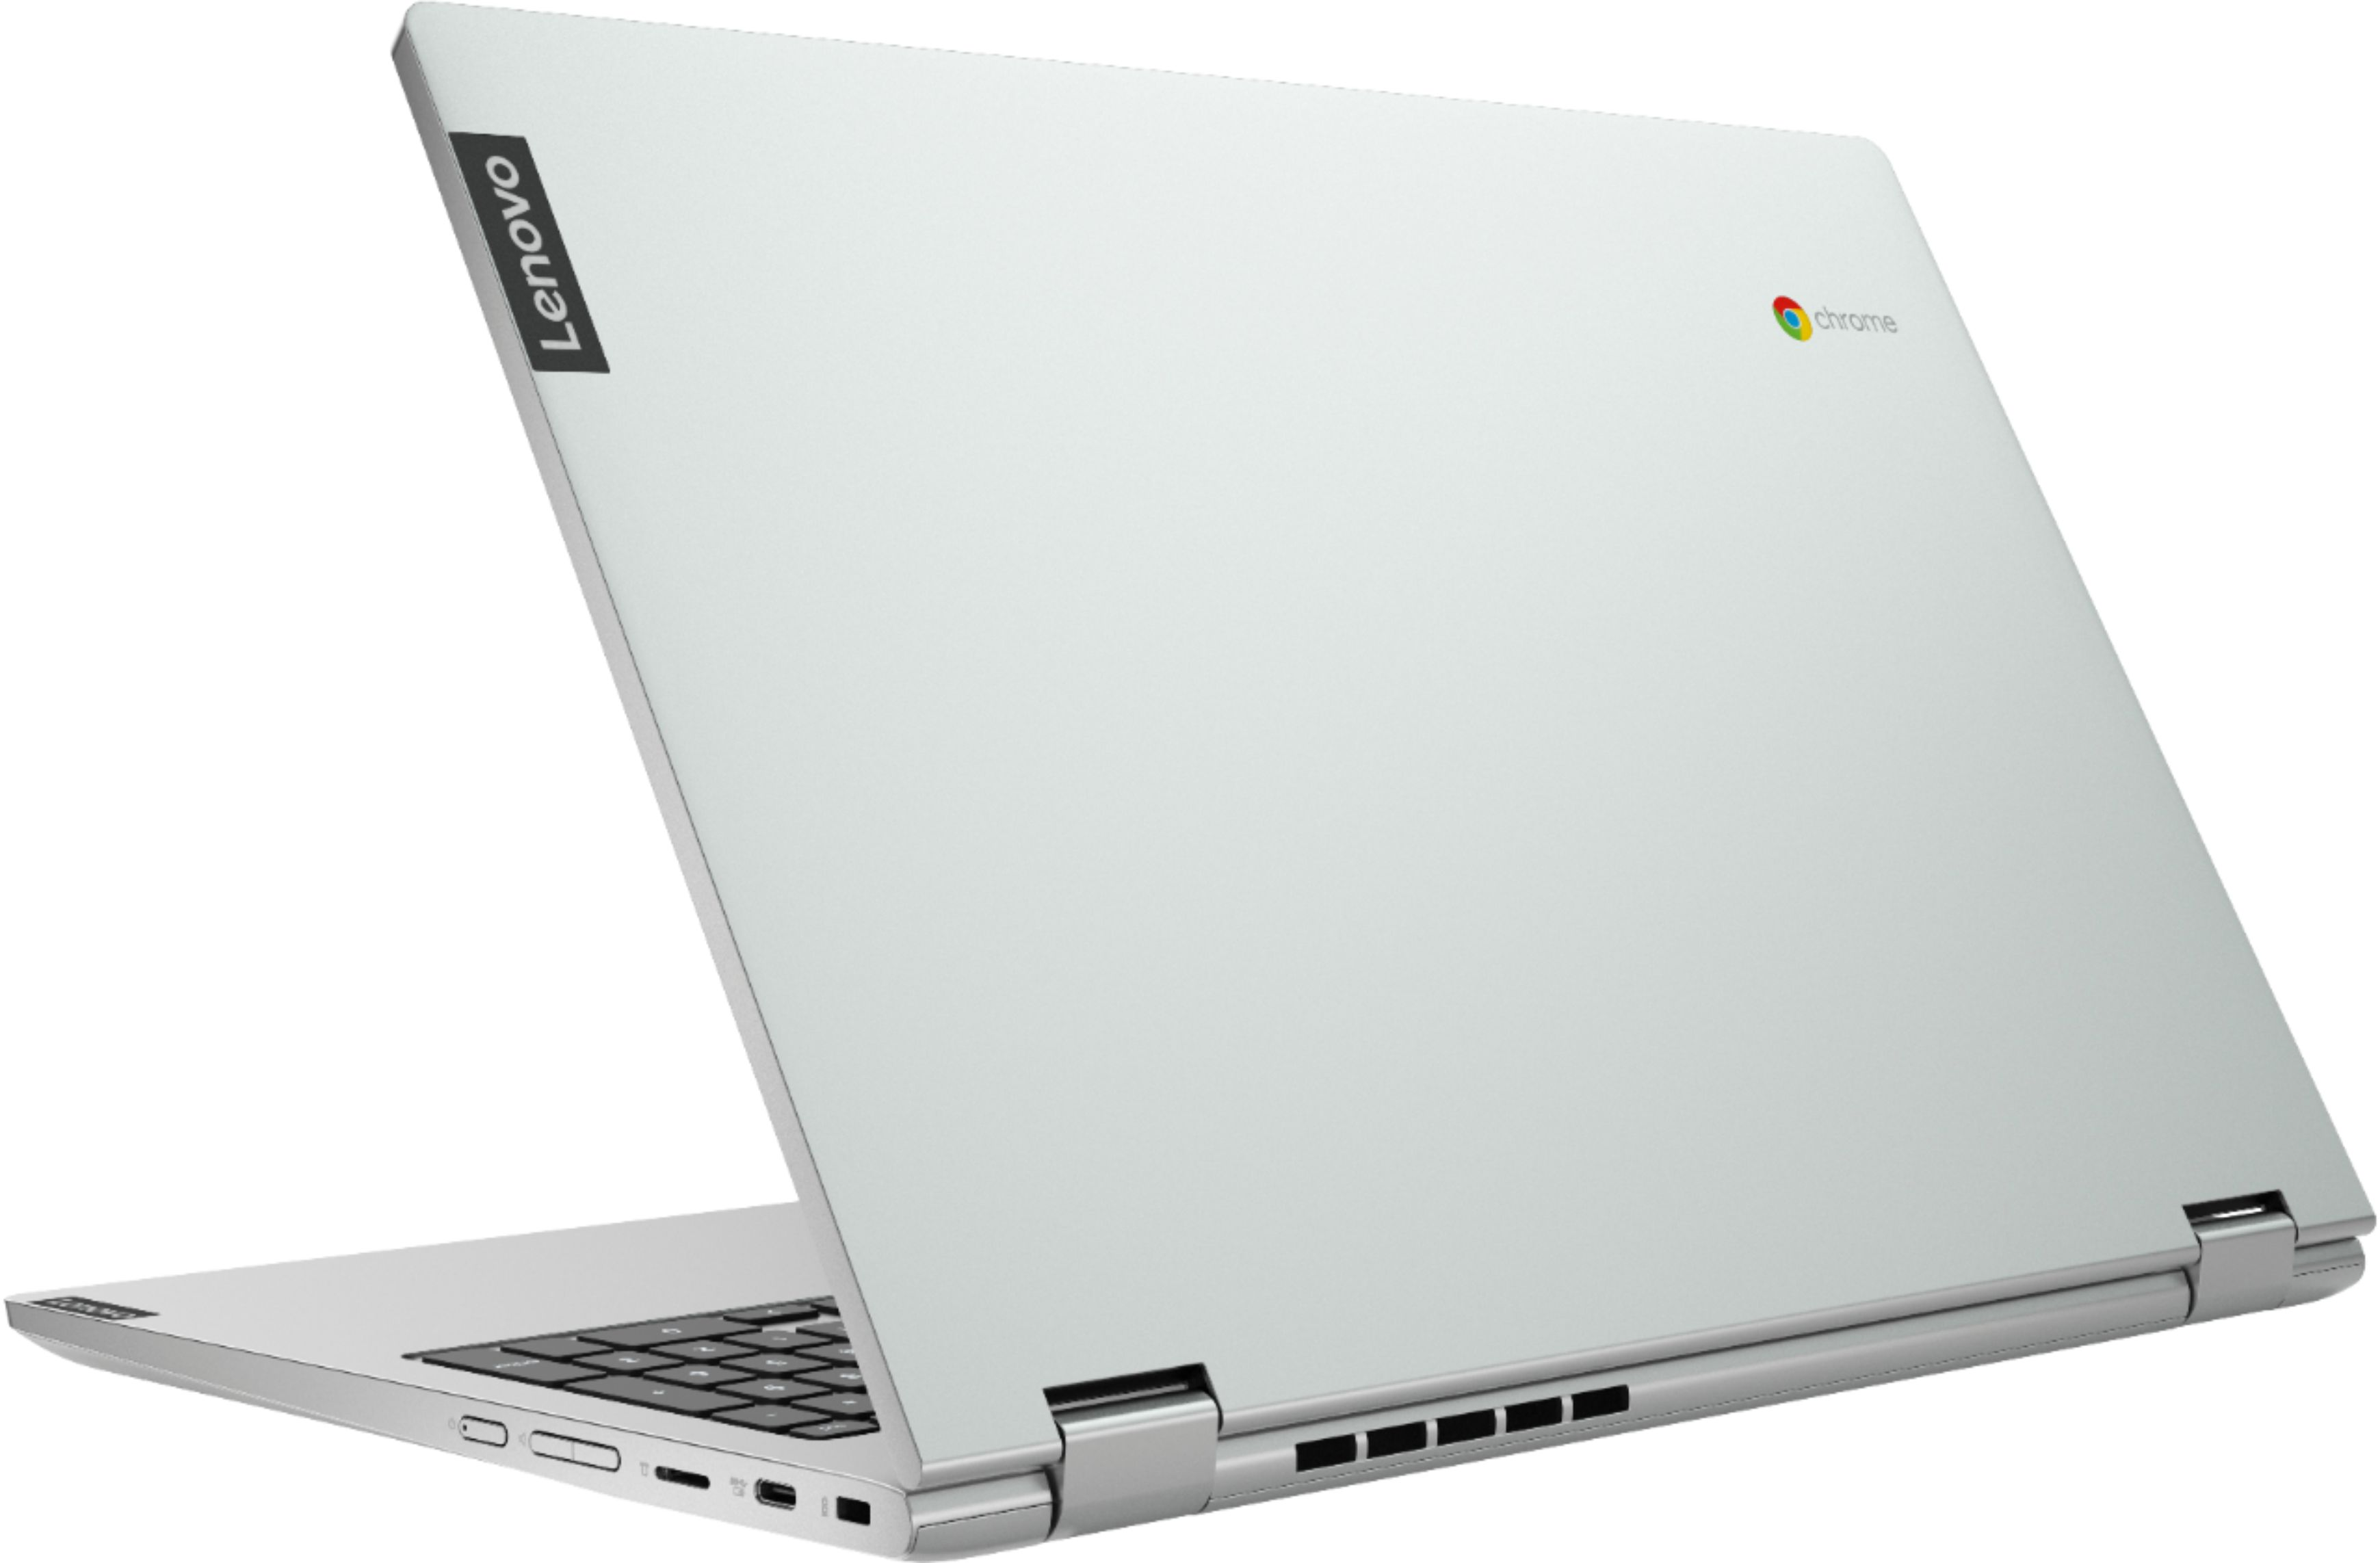 """Alt View Zoom 1. Lenovo - C340-15 2-in-1 15.6"""" Touch-Screen Chromebook - Intel Core i3 - 4GB Memory - 64GB eMMC Flash Memory - Mineral Gray."""